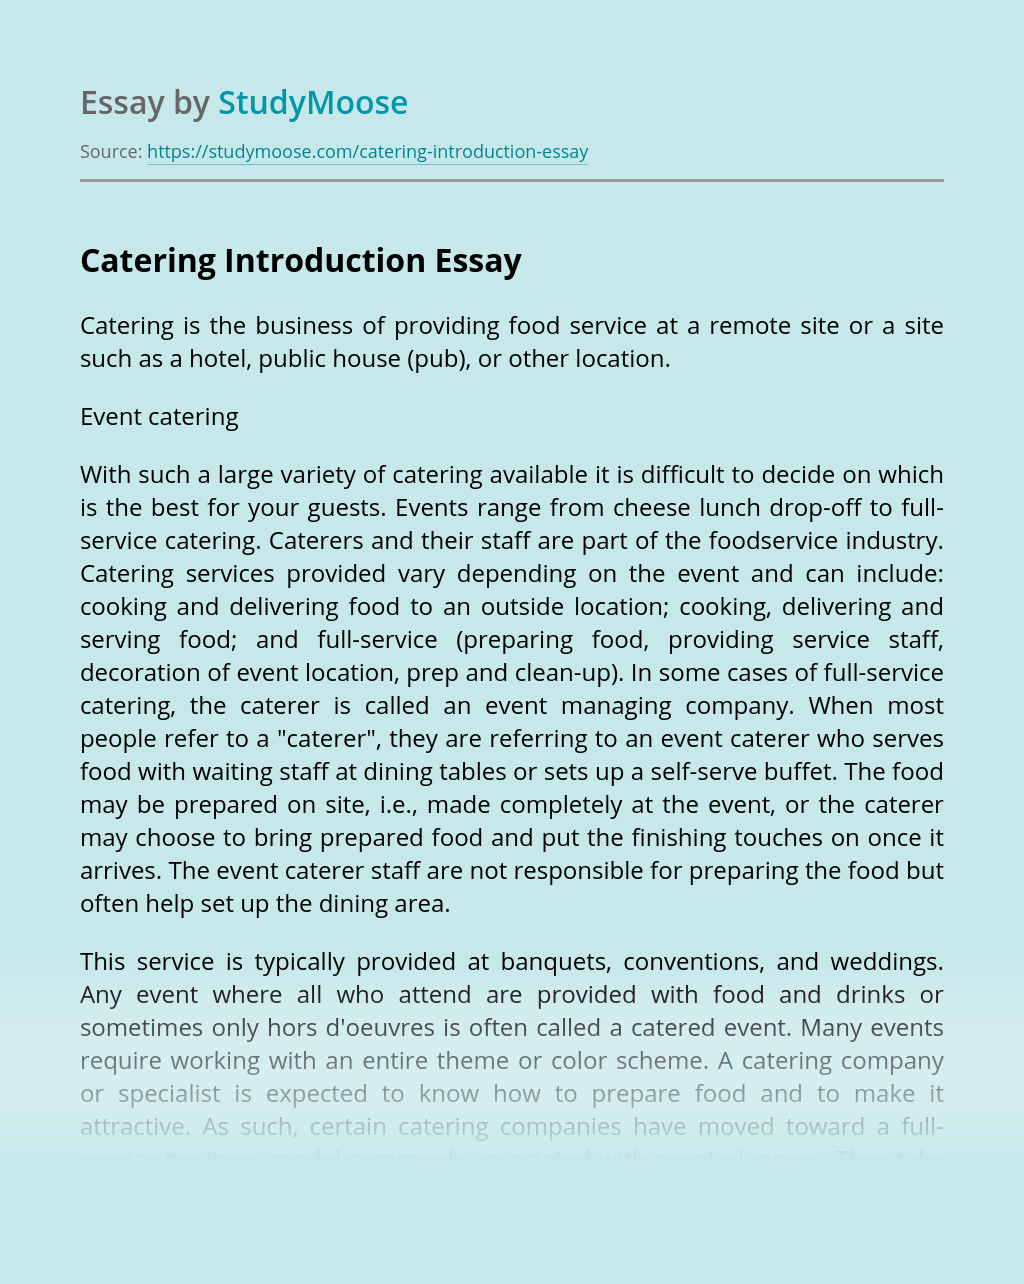 Catering Introduction